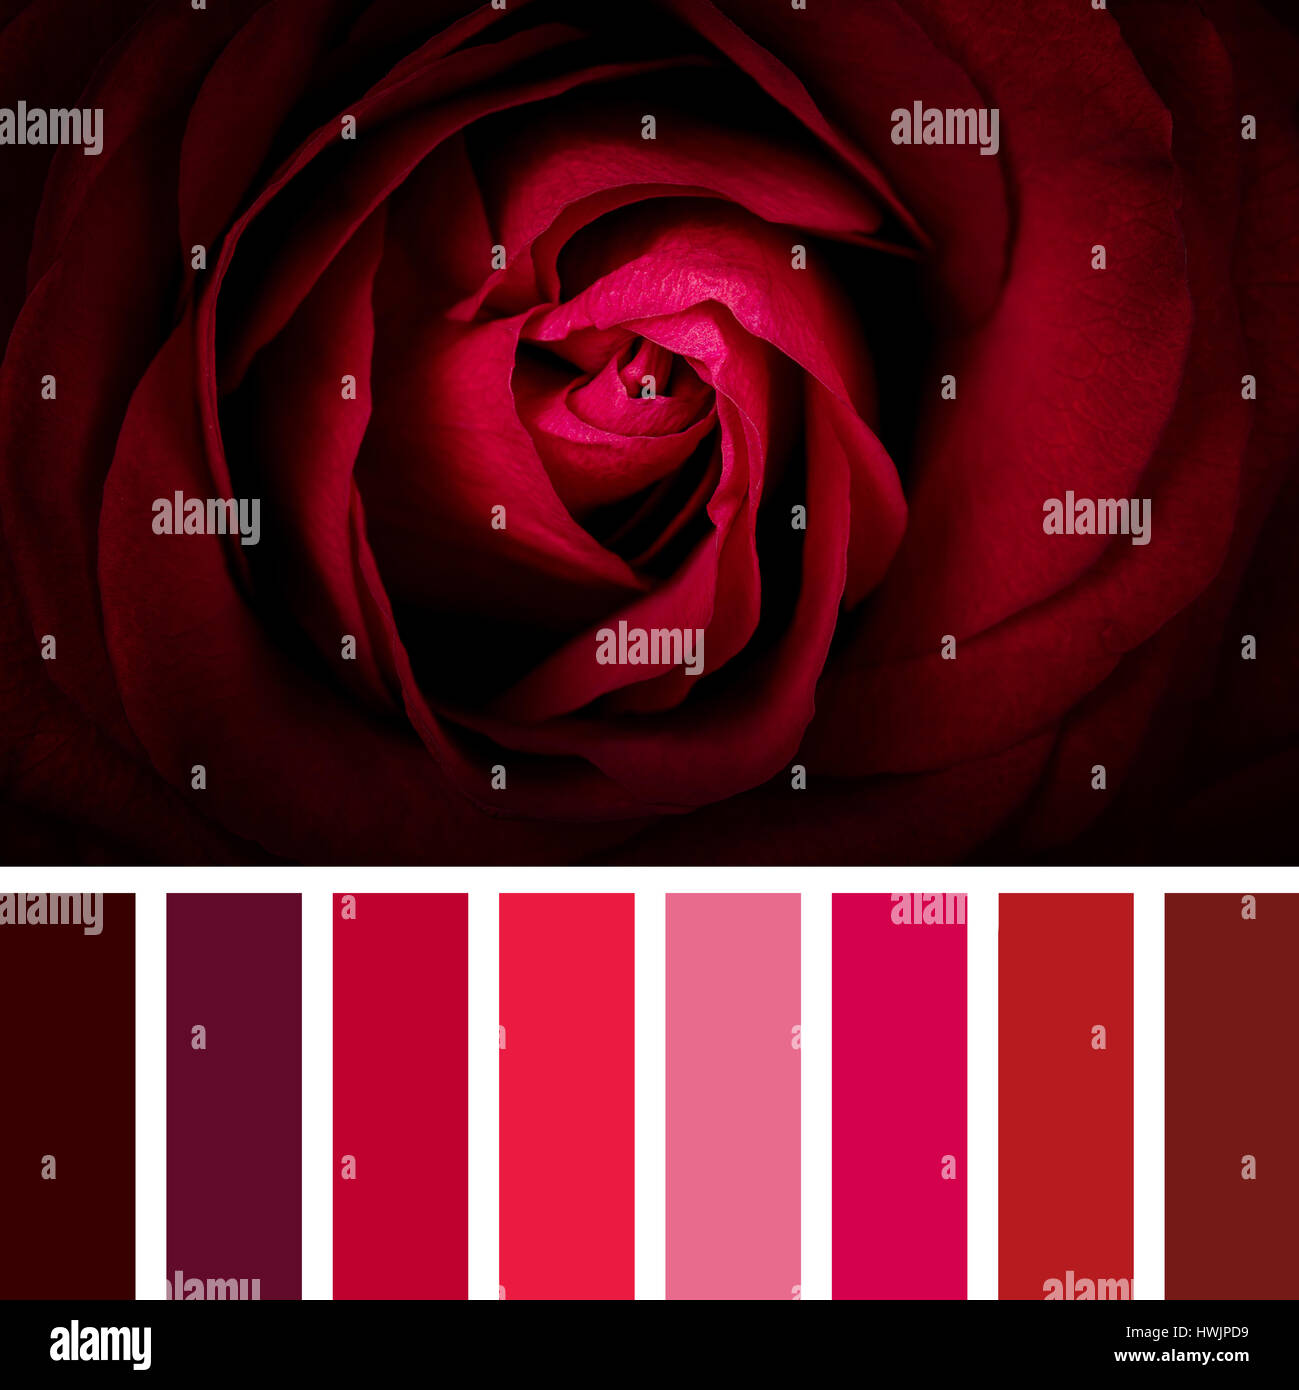 Pink And Red Colour Chart Stock Photos Pink And Red Colour Chart